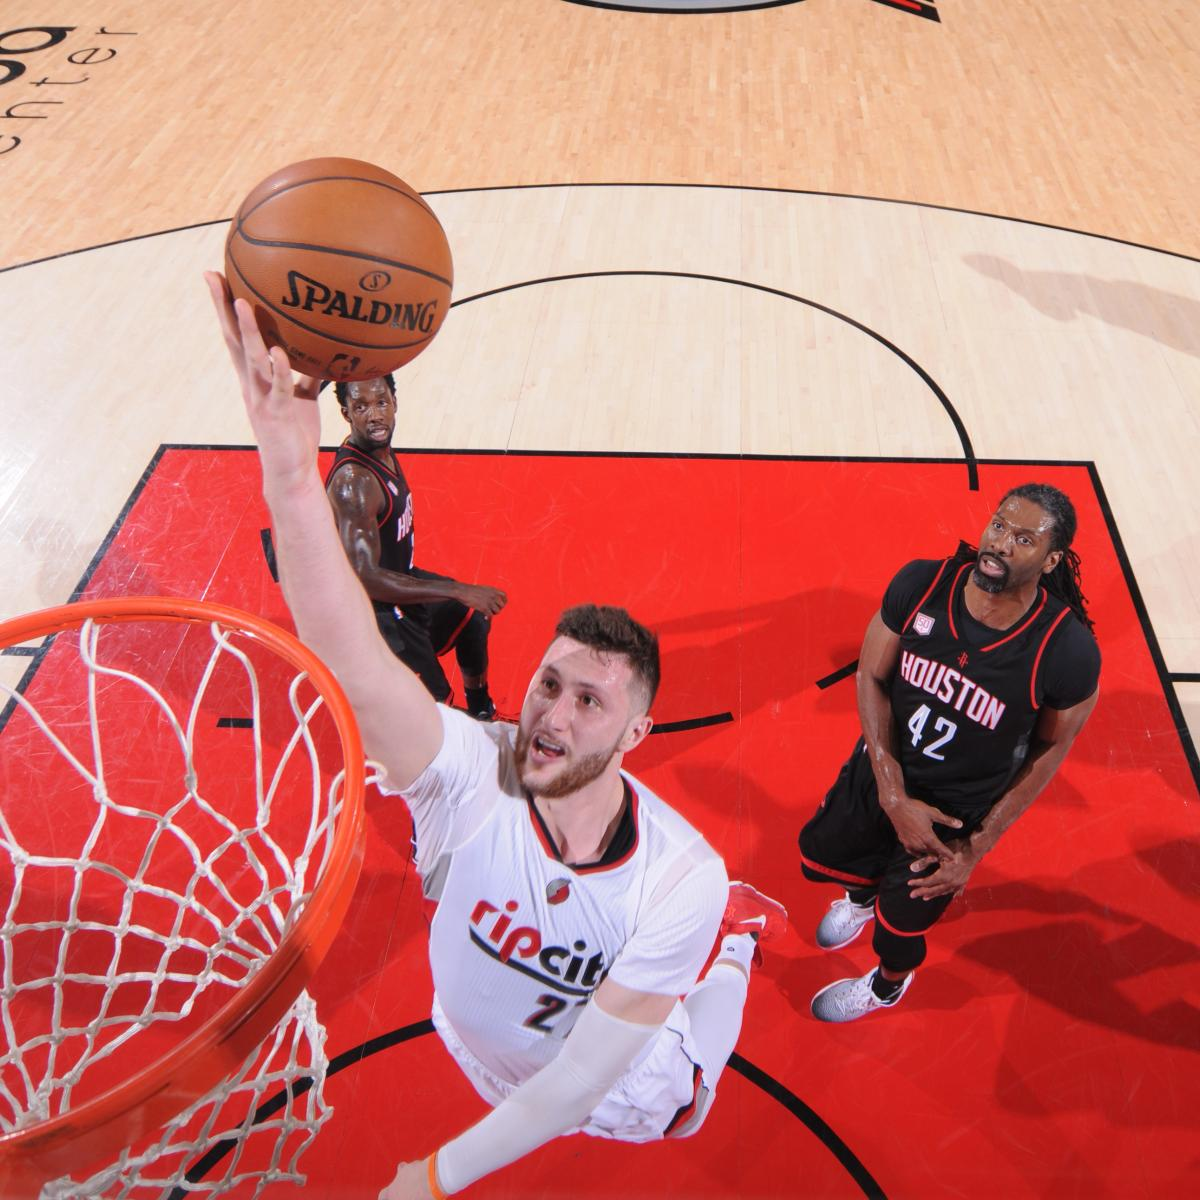 Warriors Come Out To Play Bleacher Report: Jusuf Nurkic Will Play In Game 3 Vs. Warriors After